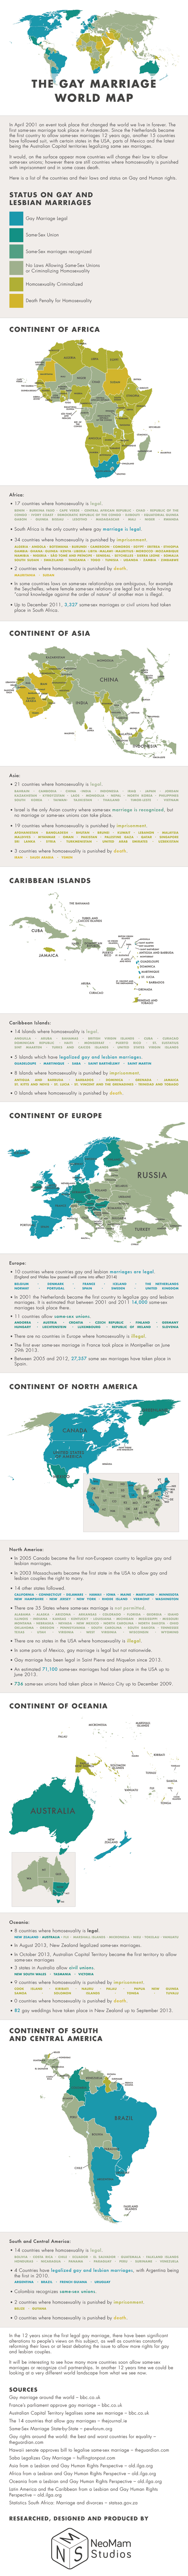 infographic world mariage - 7982926848